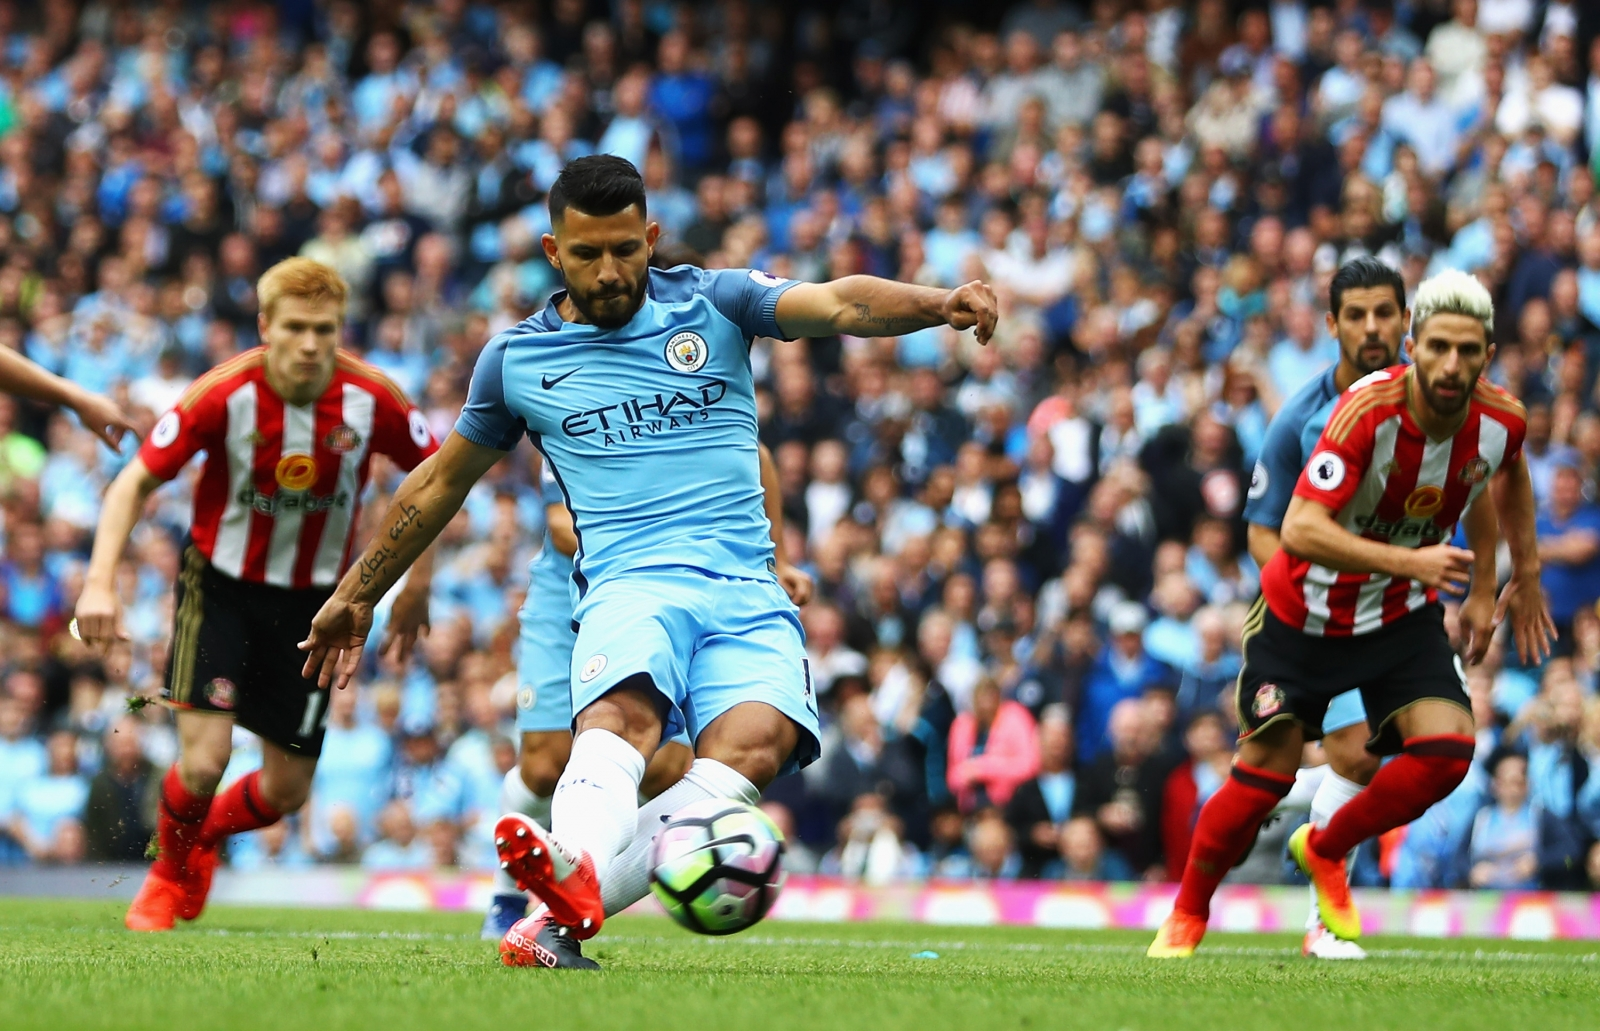 Manchester City new boy Nolito 'proud' to pair up with Sergio Aguero